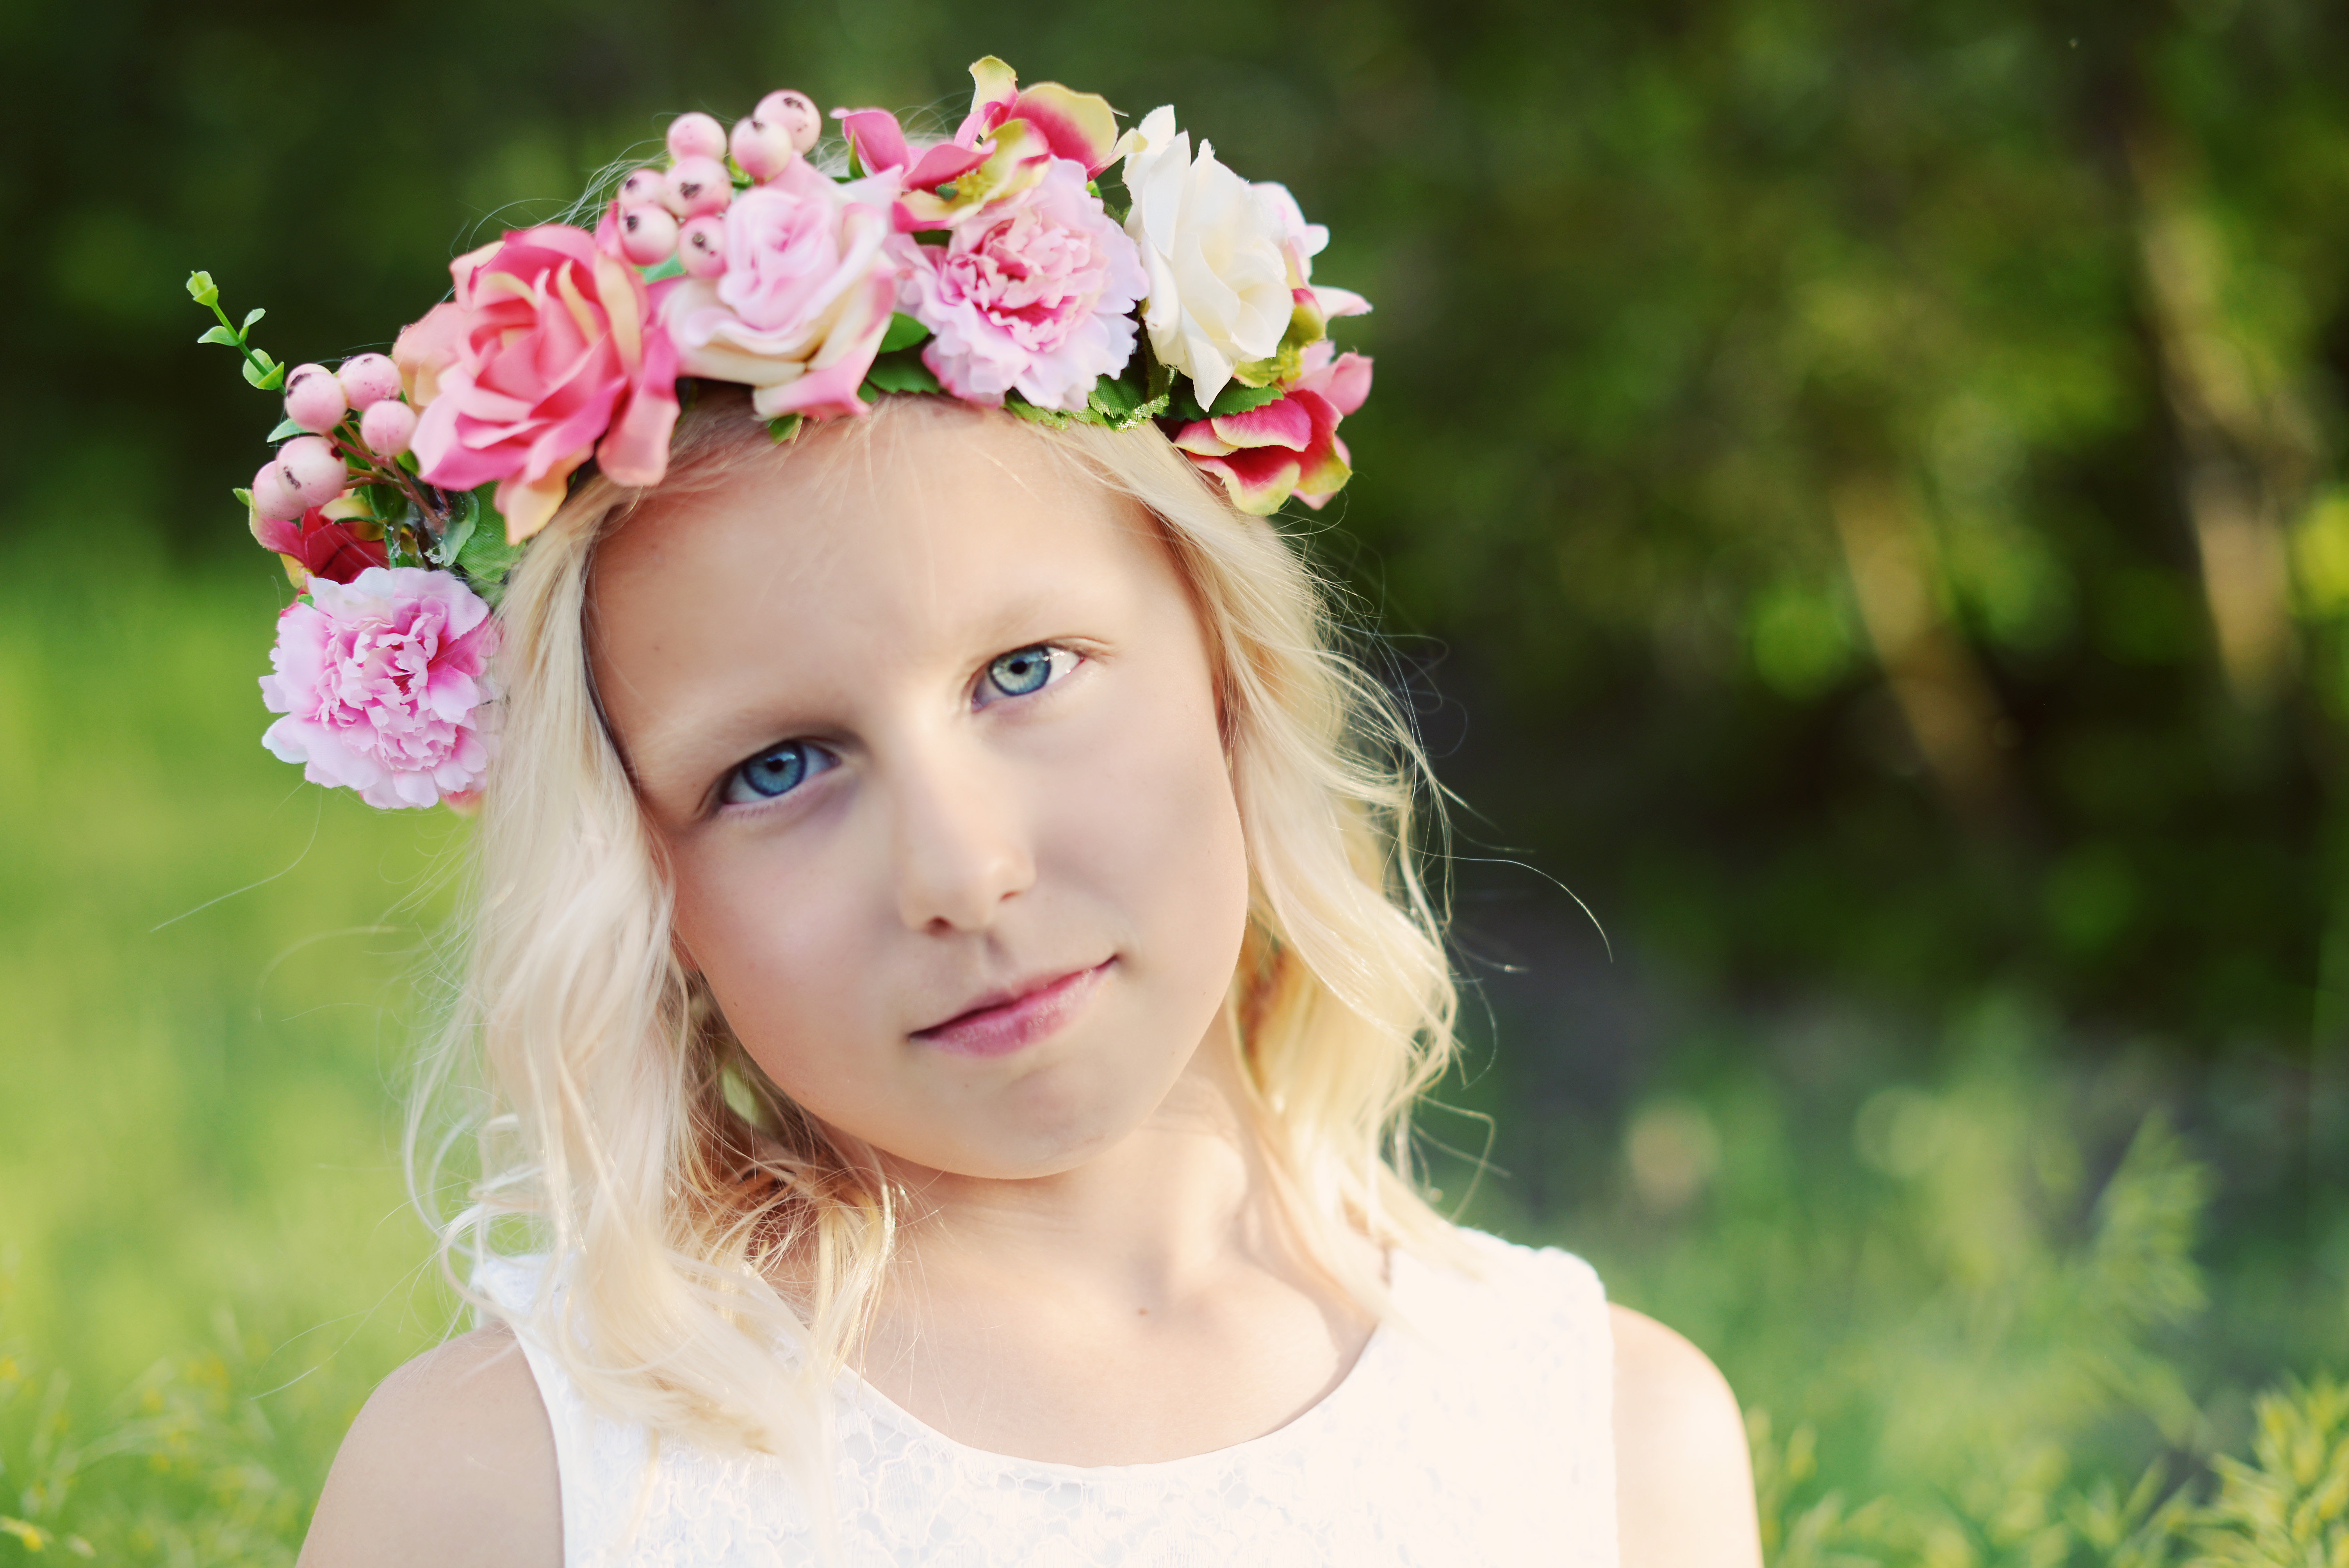 Visit our range of handmade floral hair crowns and wreaths by gilly a pink and ivory flower girl crown with pretty flowers and leaf accents izmirmasajfo